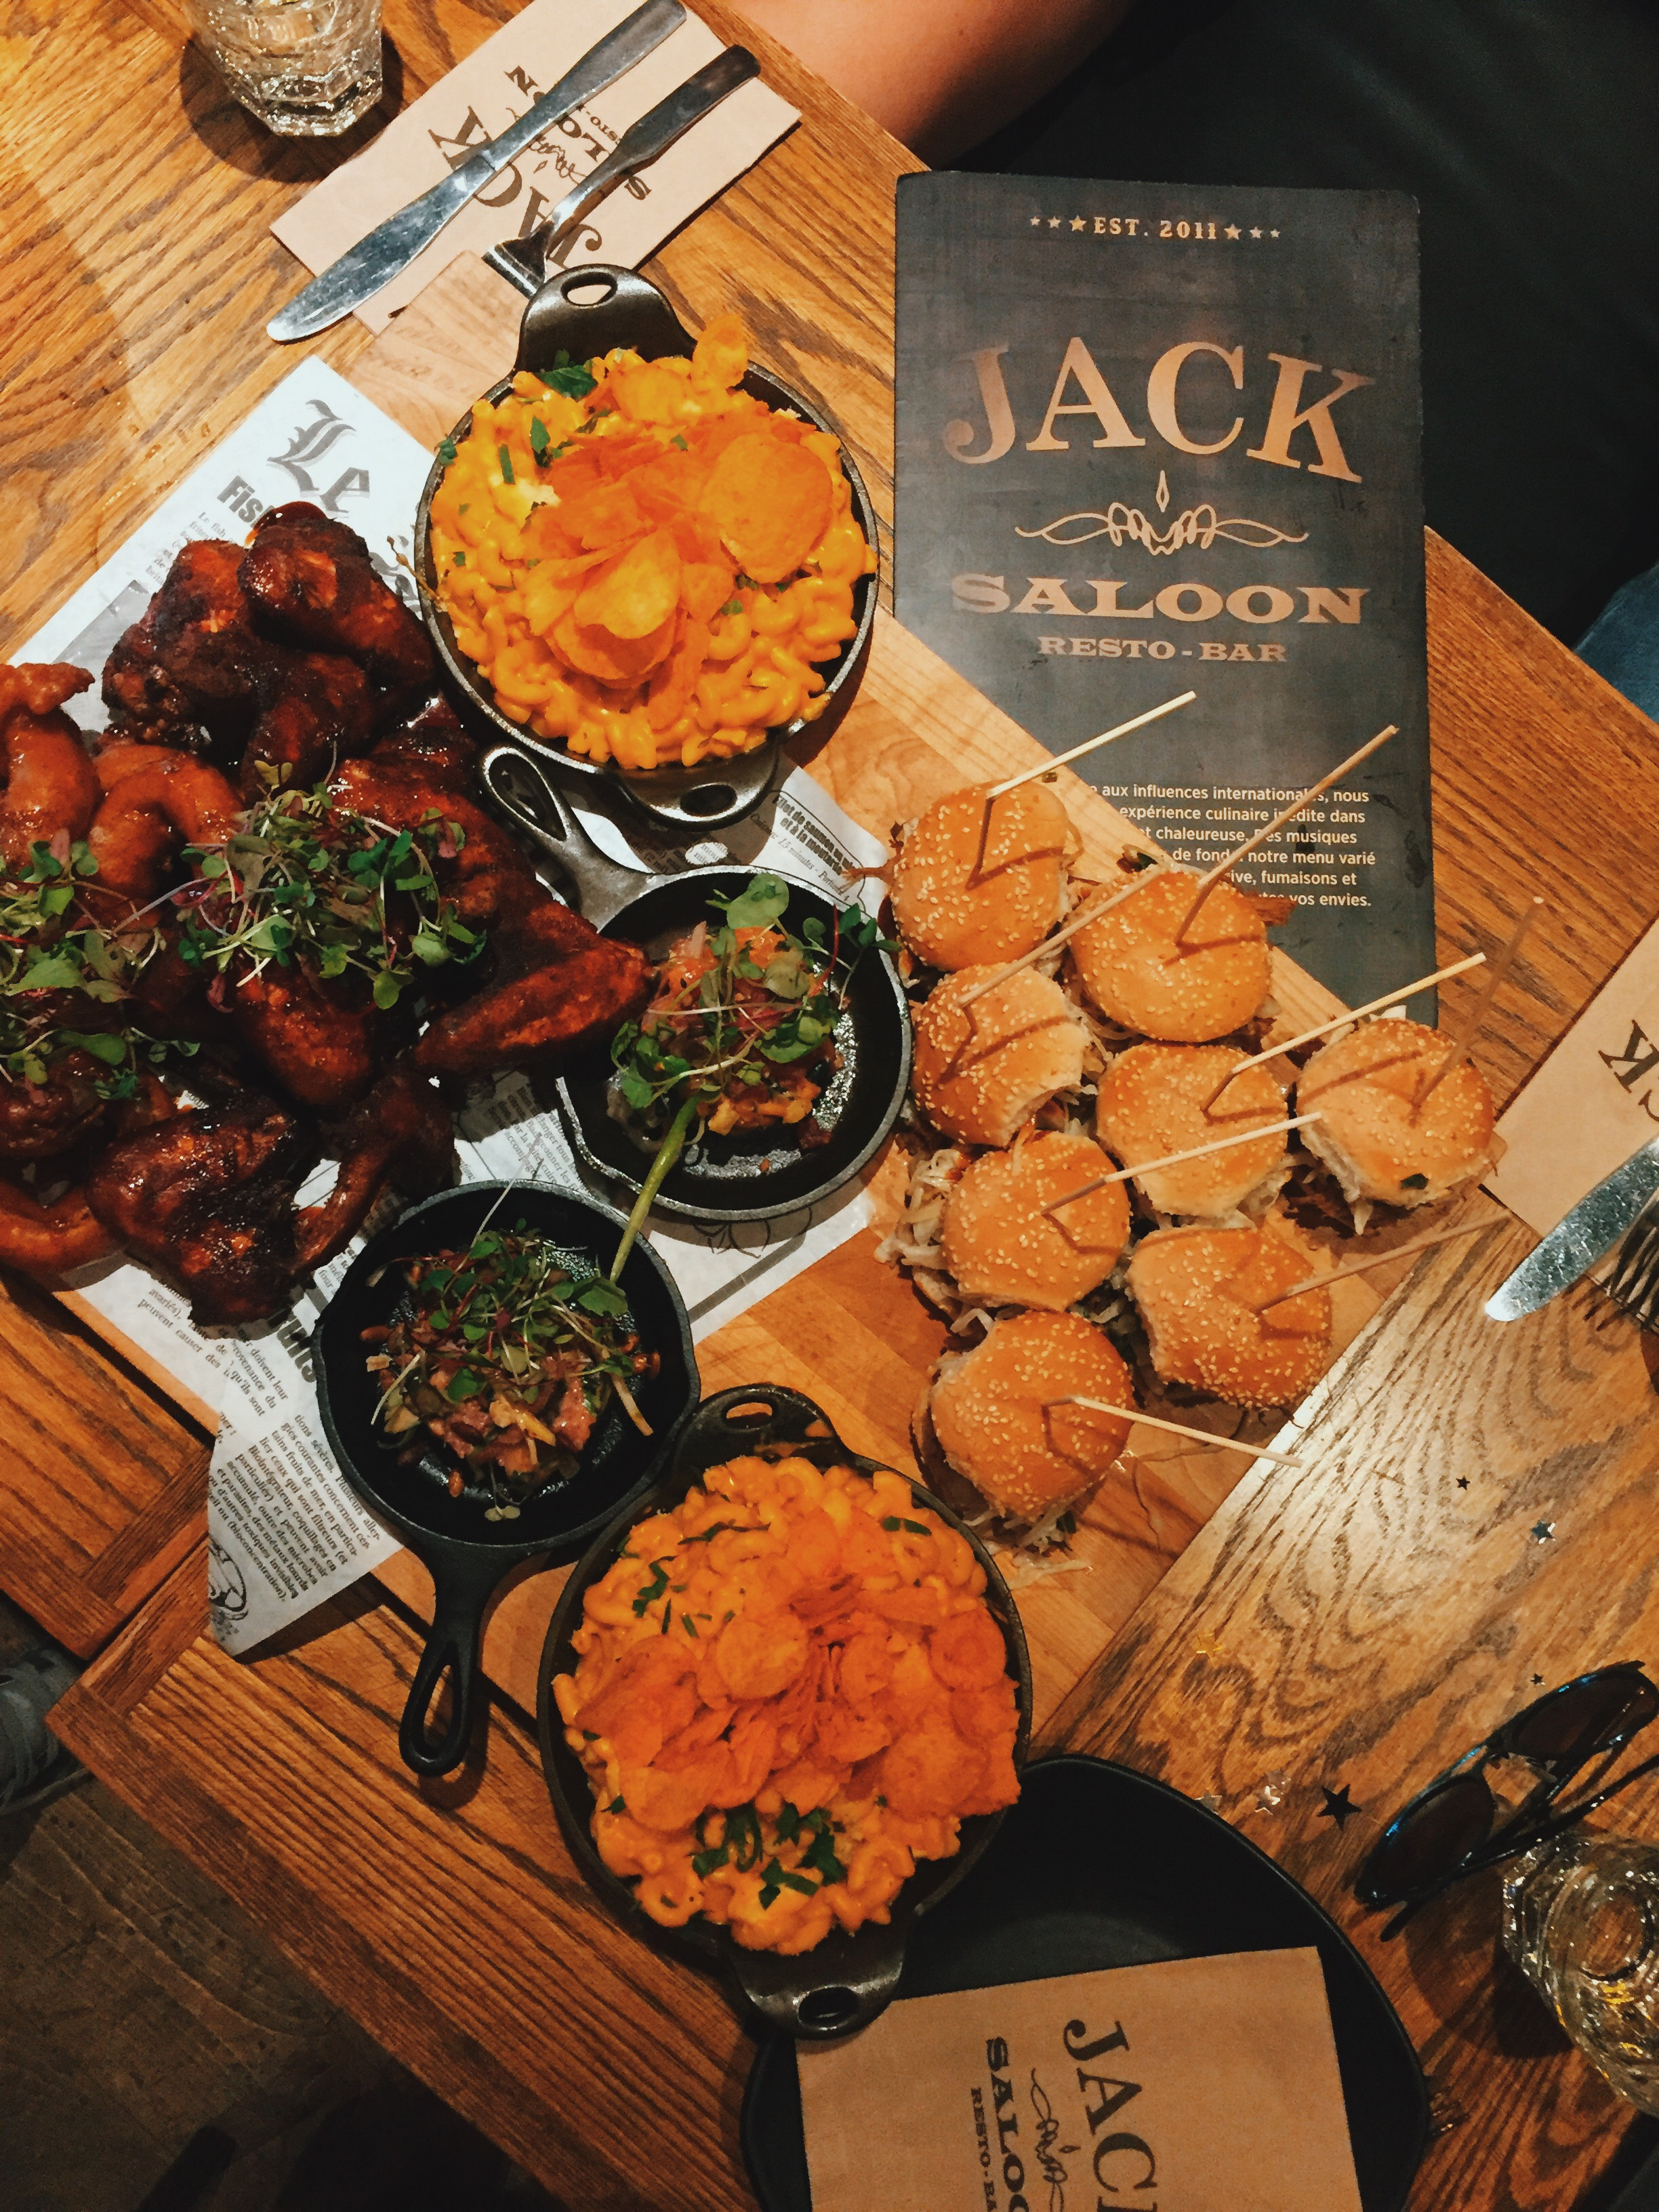 Jack Saloon Dix30: Quebec's Champion of Southern Cuisine